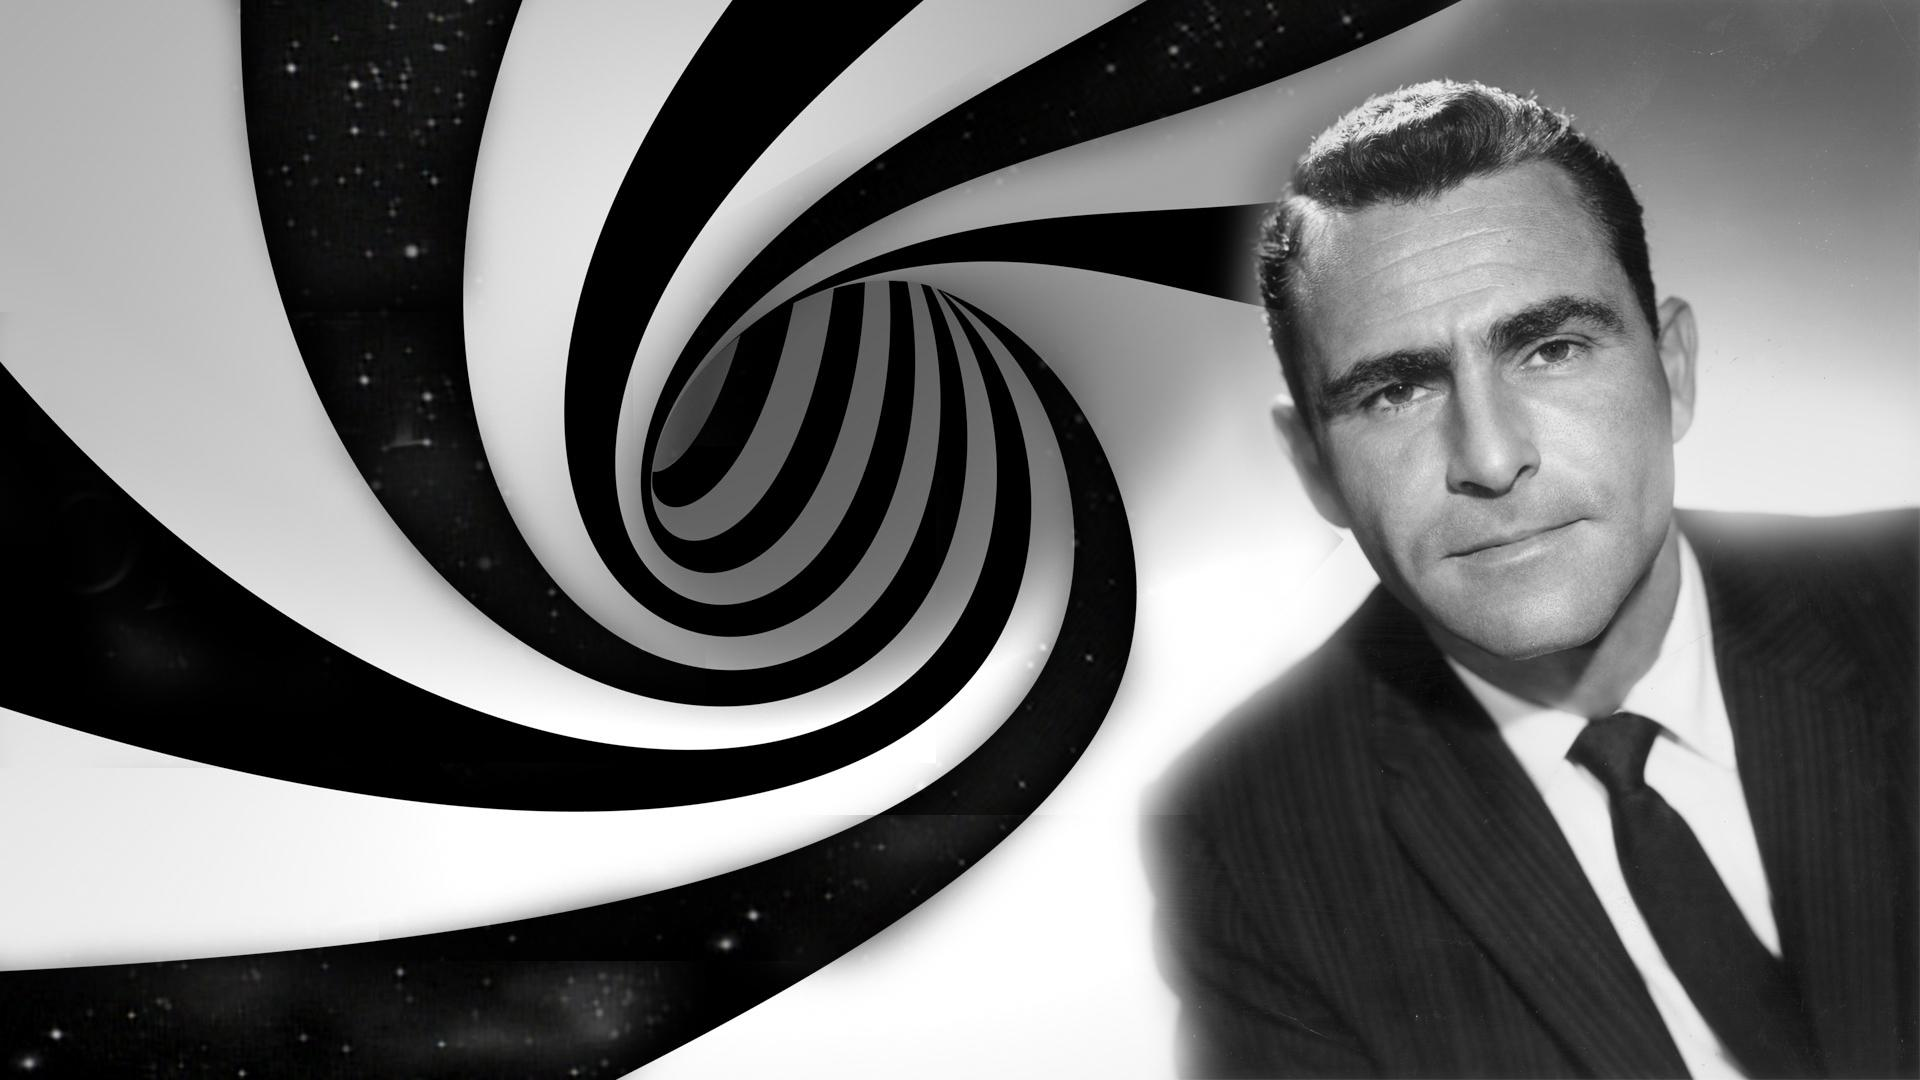 The Future Of Work Is Twilight Zone